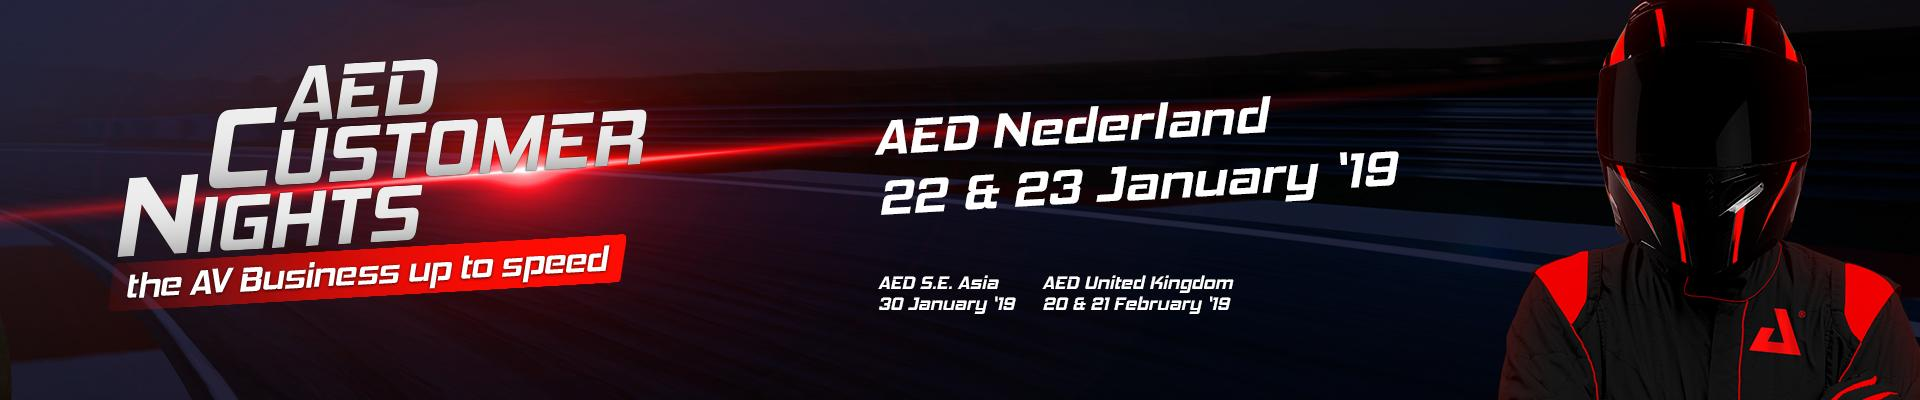 AED Customer Nights 2018-2019